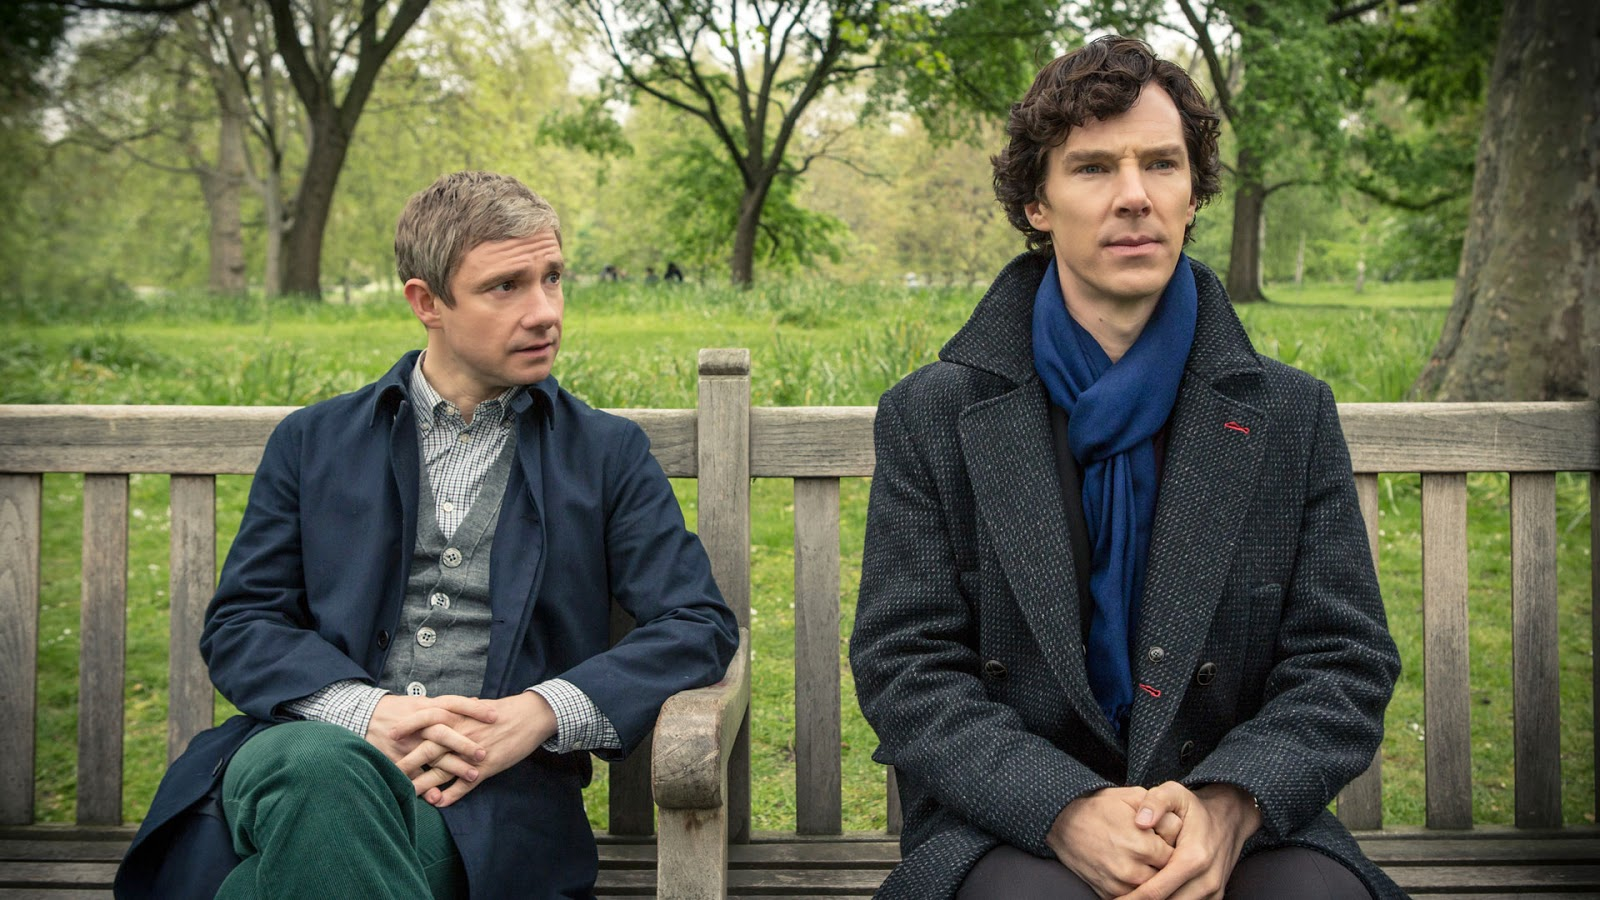 Benedict Cumberbatch and Martin Freeman as Sherlock Holmes and John Watson in BBC Sherlock Season 3 Episode 2 The Sign of Three